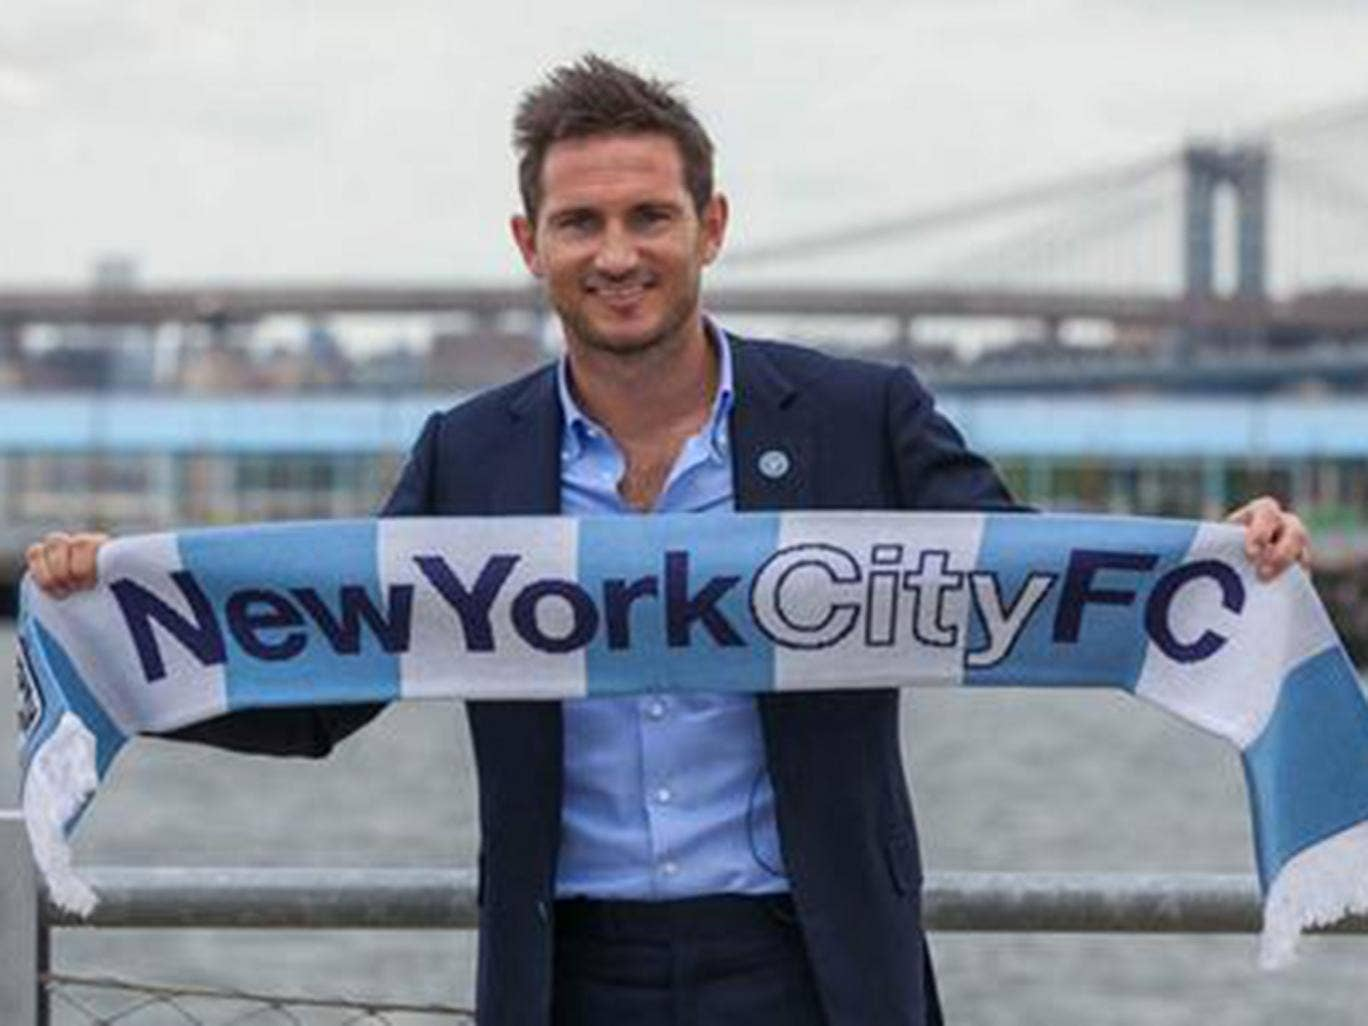 Frank Lampard is presented as a New York City FC player